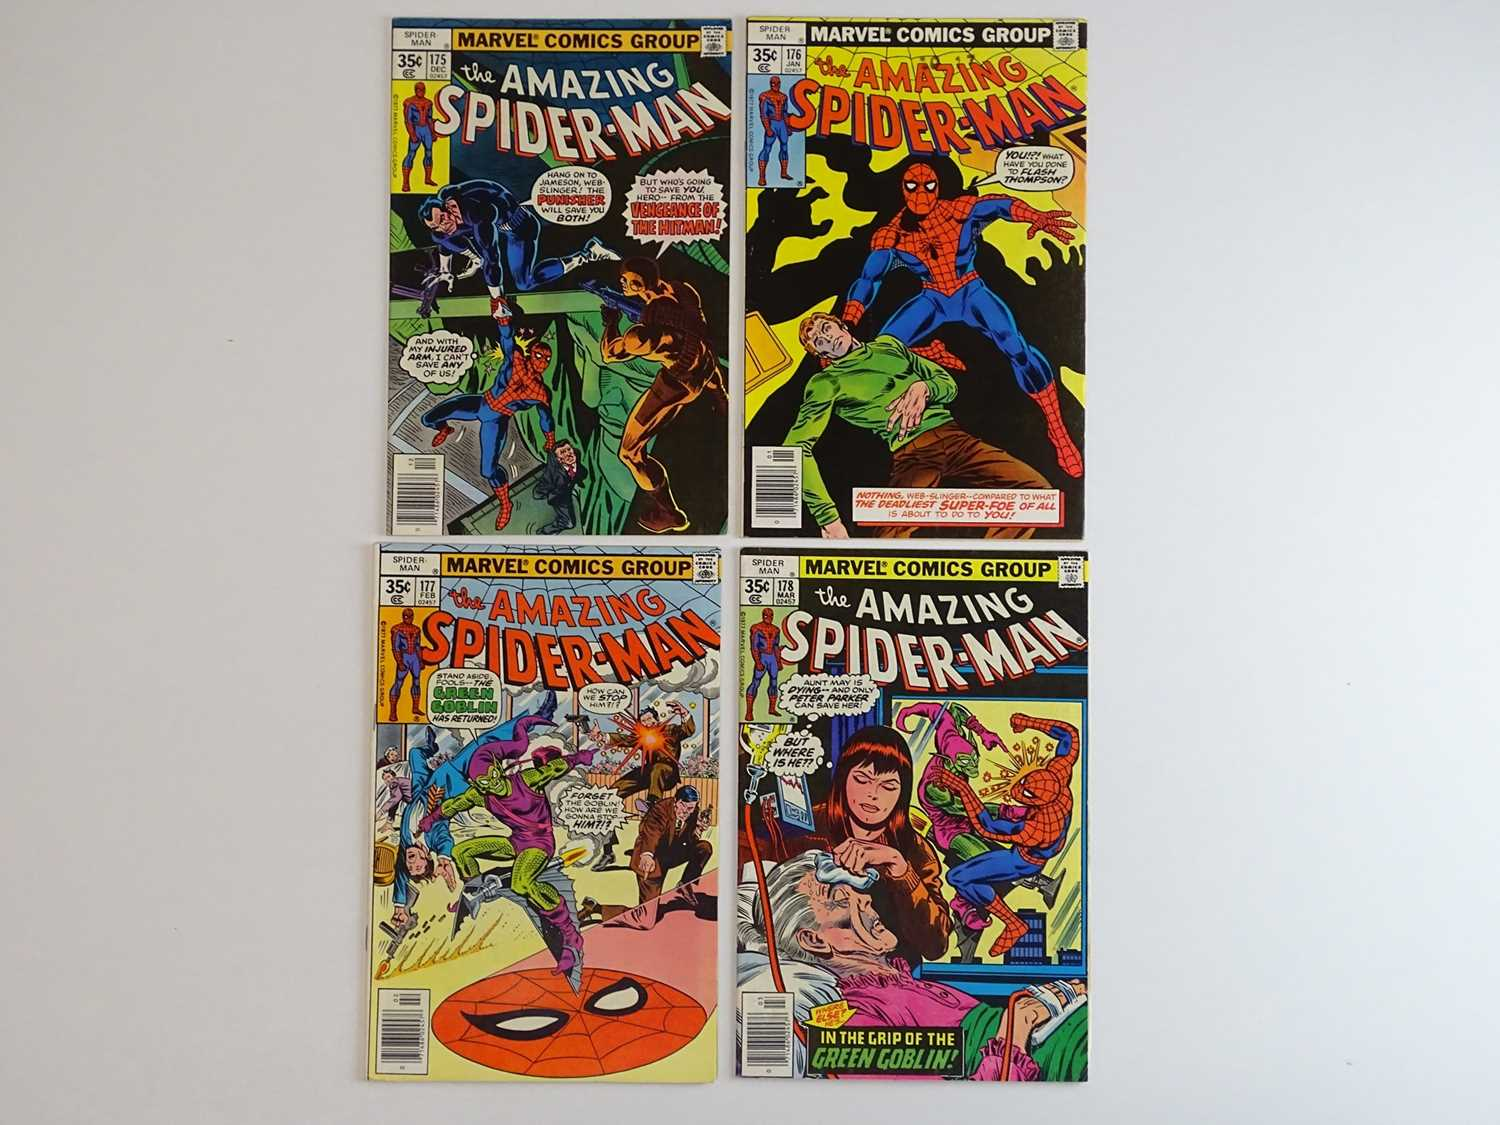 AMAZING SPIDER-MAN #175, 176, 177, 178 - (4 in Lot) - (1977/78 - MARVEL) - Includes 'Death' of